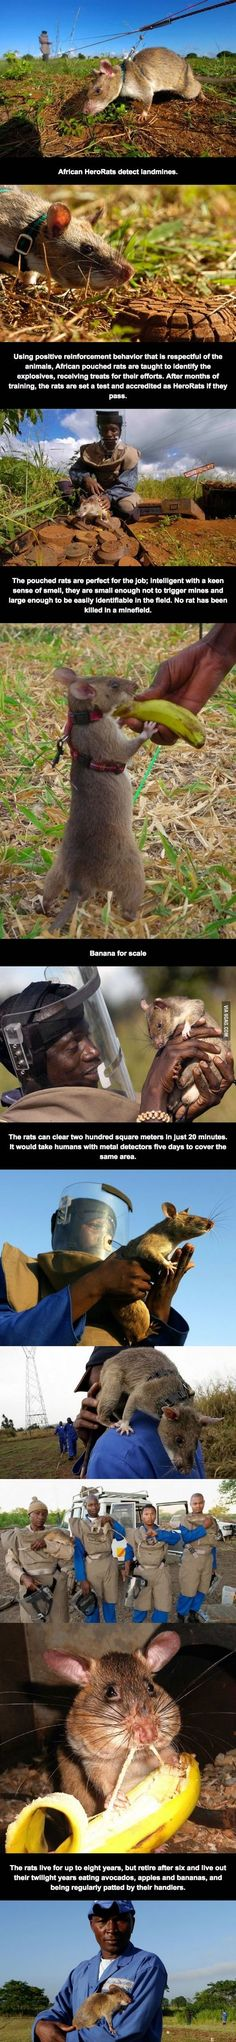 The real heroes you don't hear about. - 9GAG